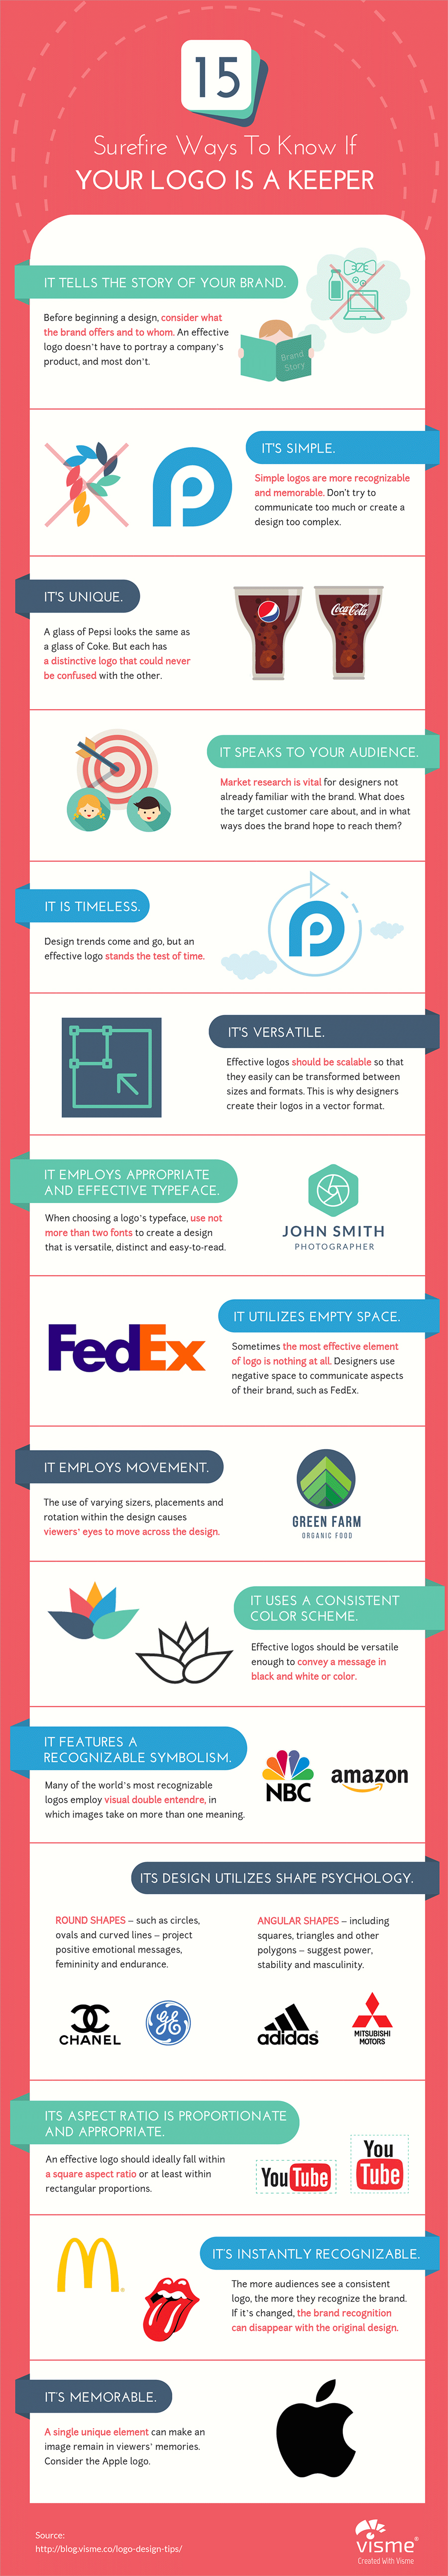 15 Logo Design Tips To Help Your Brand Identity